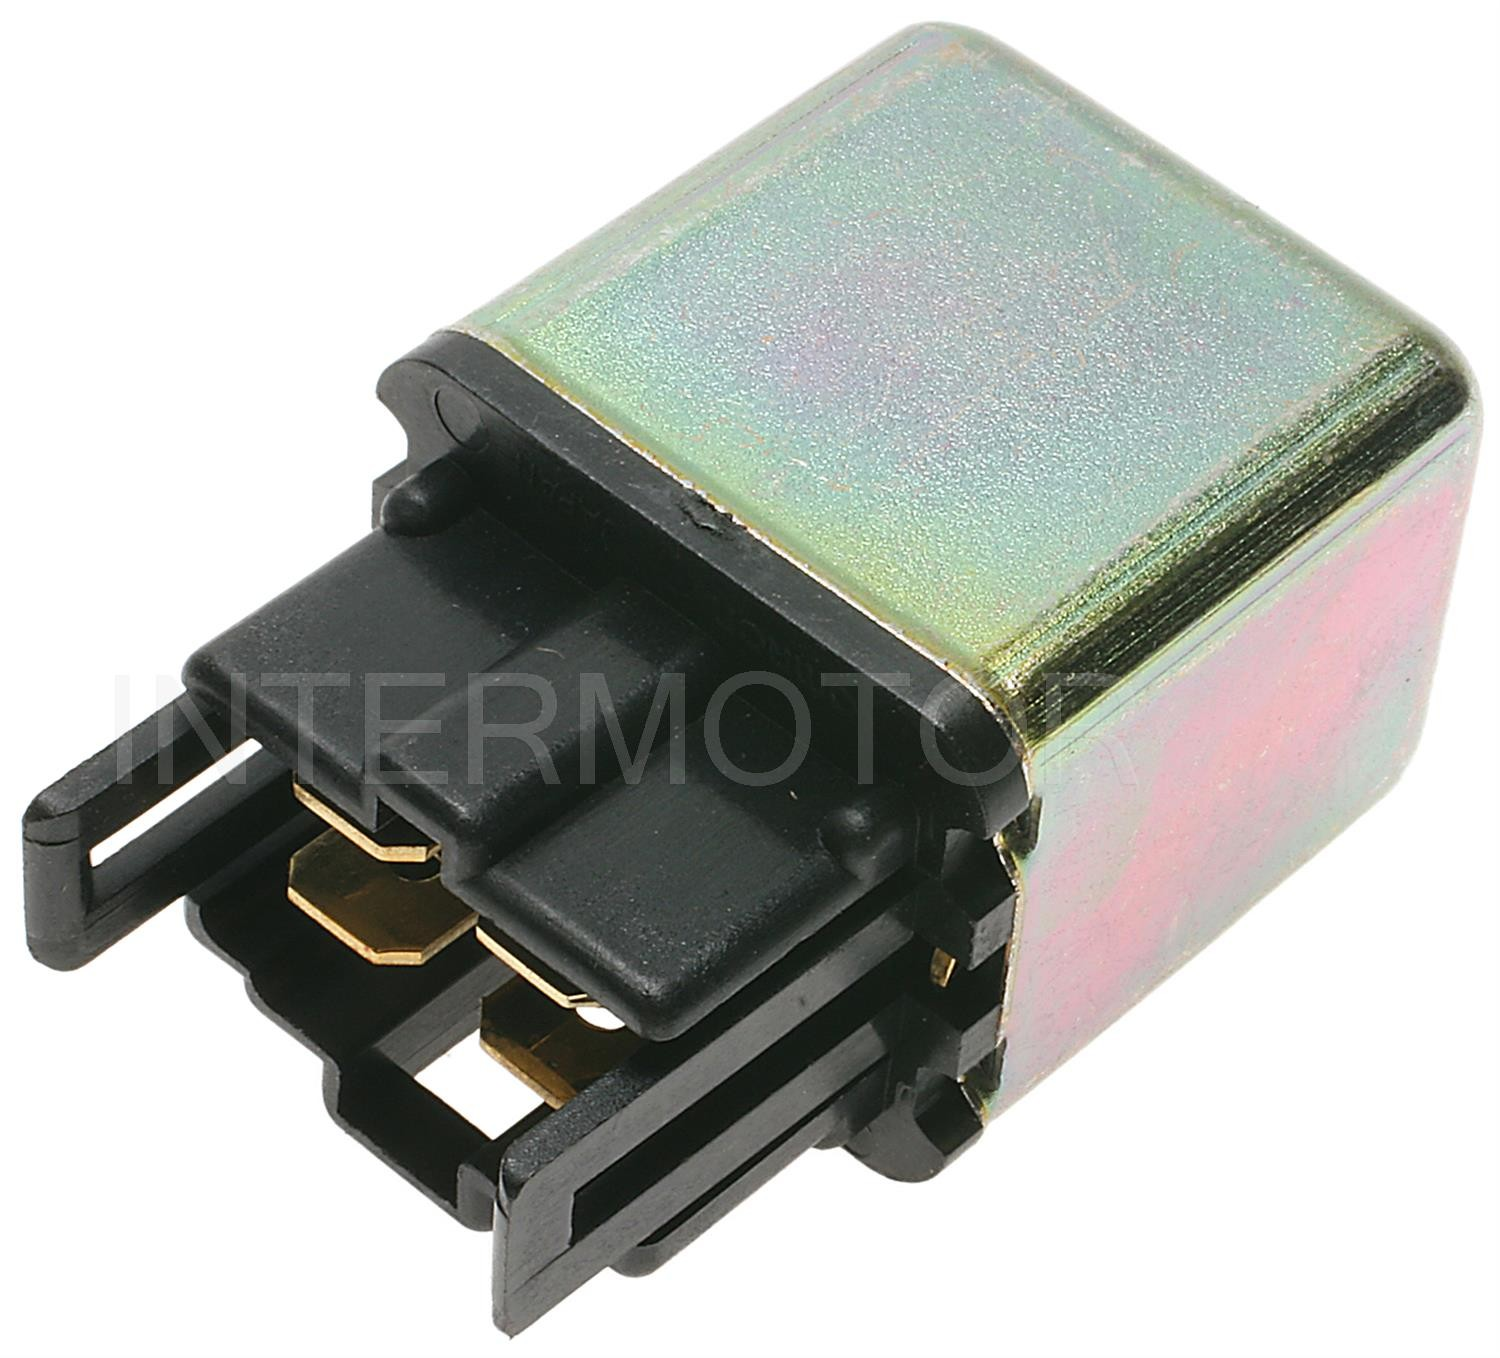 1983 Honda Accord Main Relay 1992 Prelude Si Ry 160